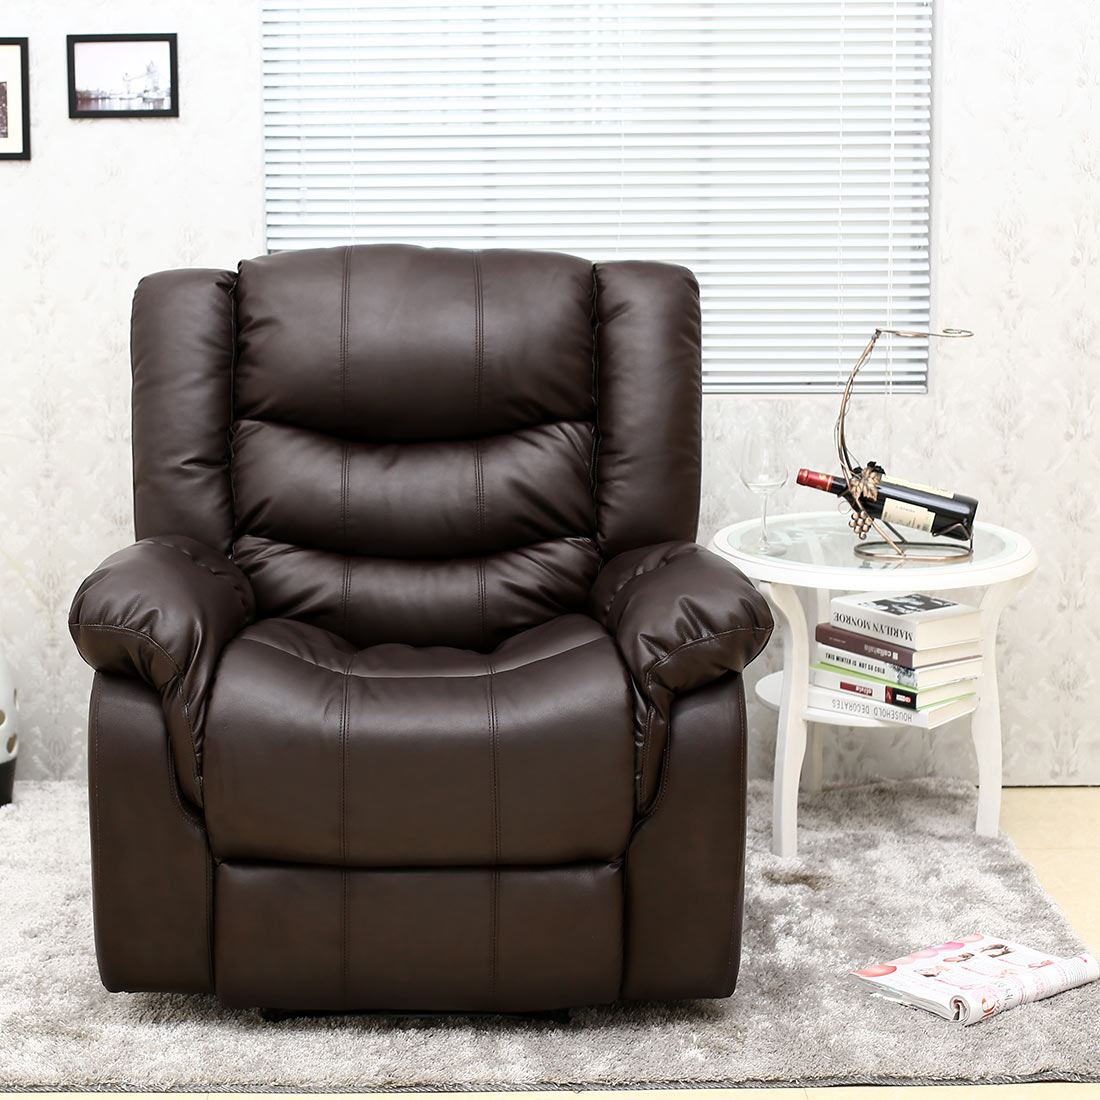 brown leather recliner sofa uk steam clean hong kong seattle armchair home lounge